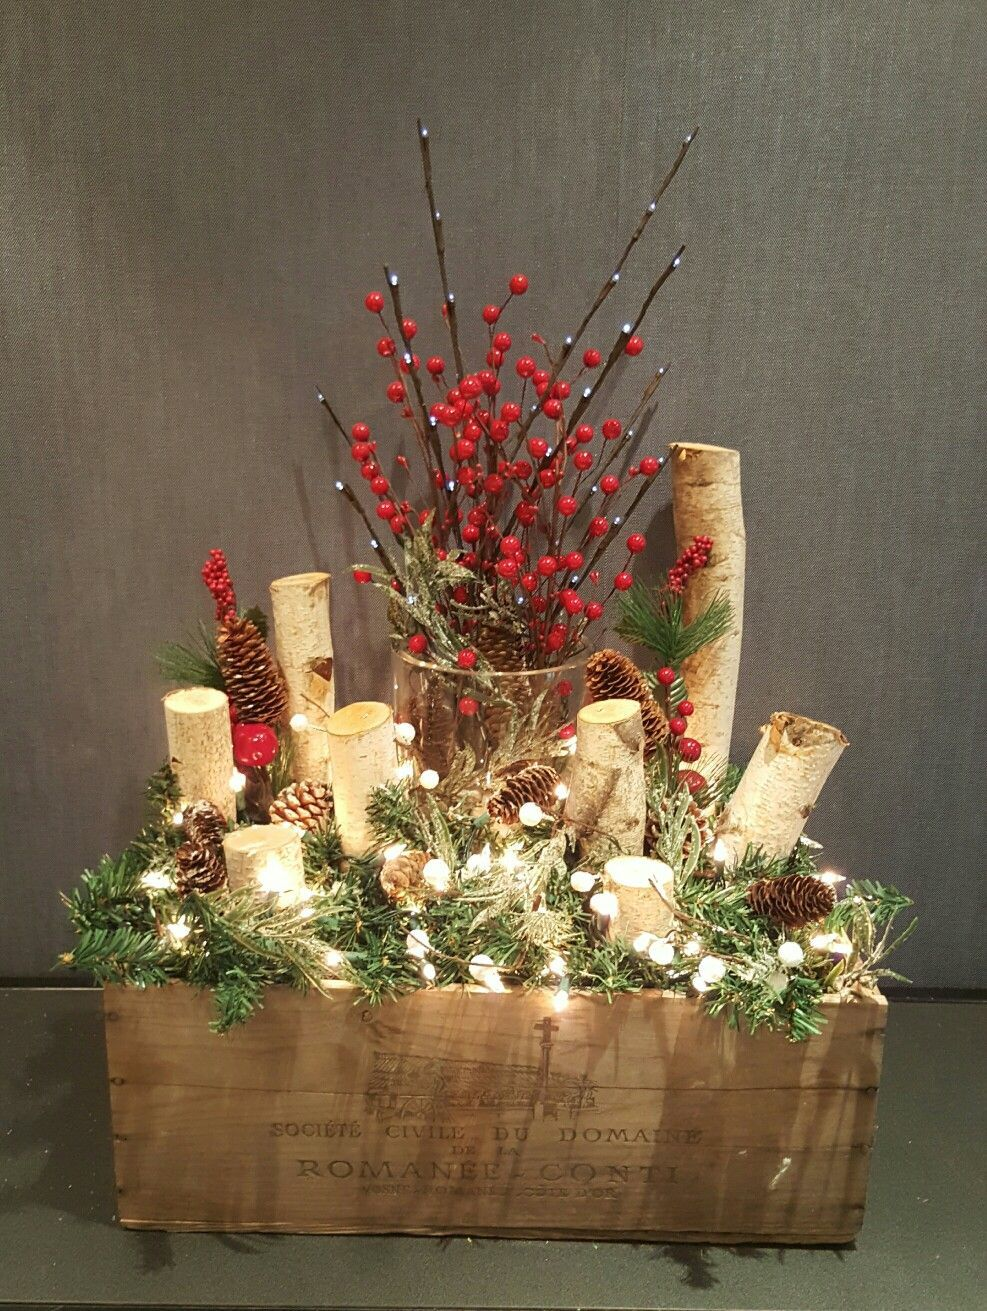 Replace Red Berries With Snow Berries In 2020 Christmas Centerpieces Diy Holiday Decor Christmas Christmas Table Decorations